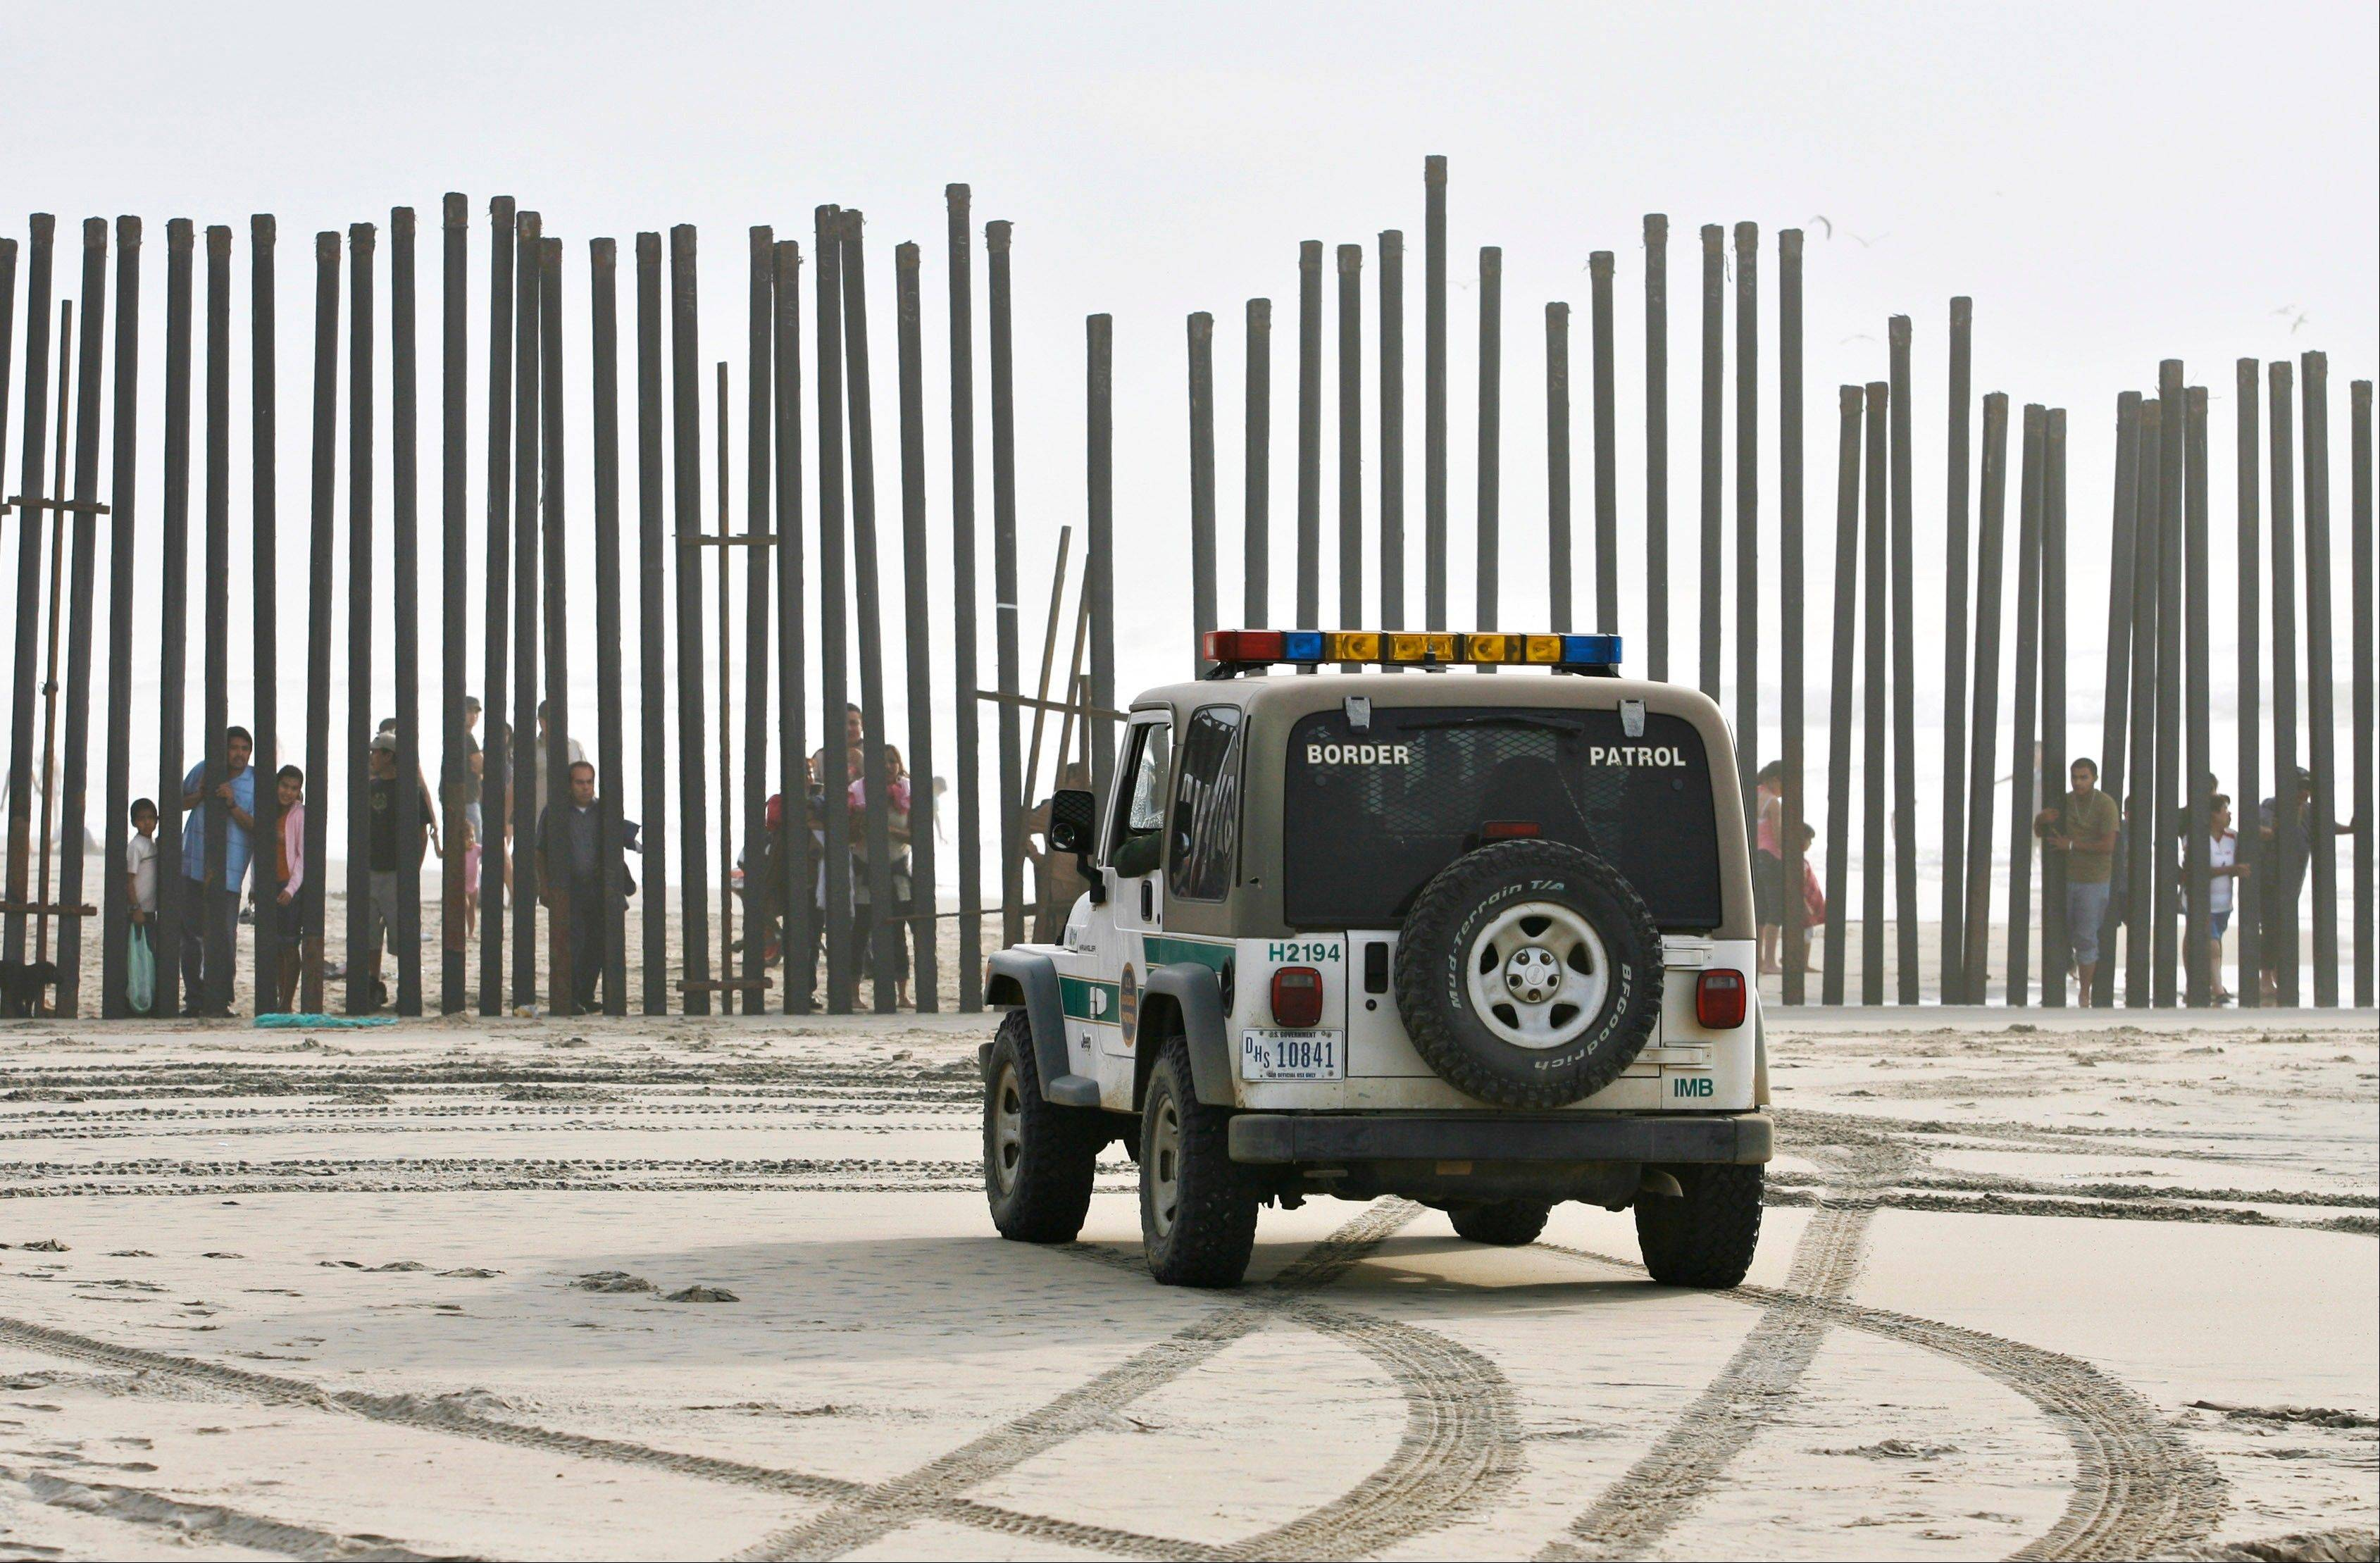 Associated Press/Jan. 18, 2009 A U.S. Border Patrol vehicle sits parked in front of a crowd of people peering through the U.S.-Mexico border fence at Border Field State Park in San Diego.